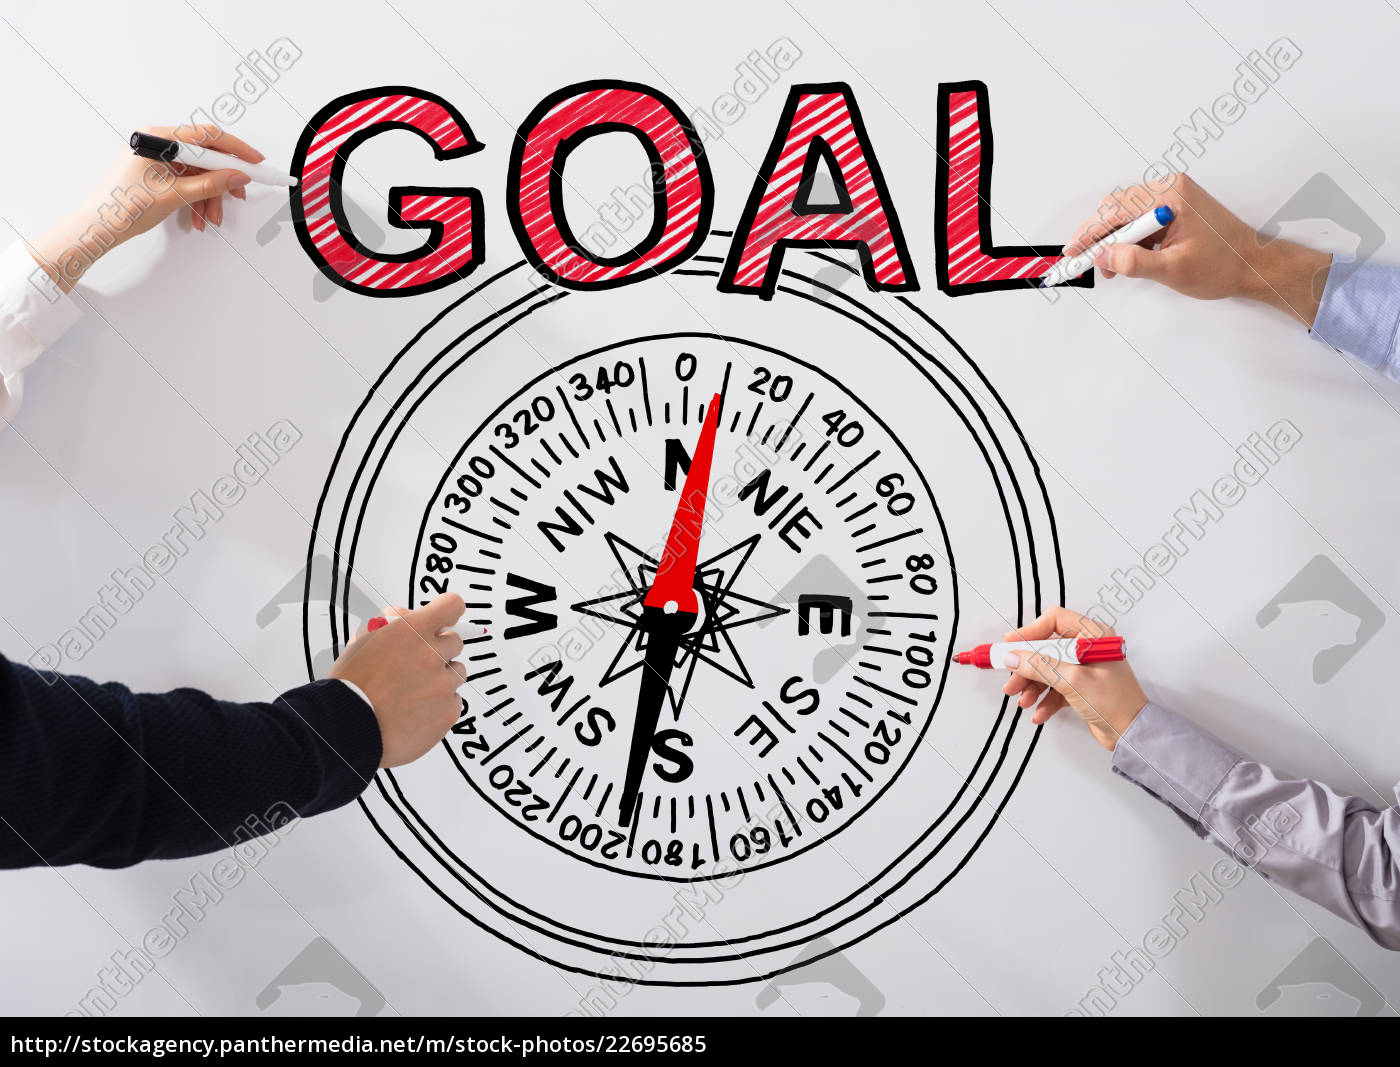 executives, drawing, goal, concept, on, whiteboard - 22695685